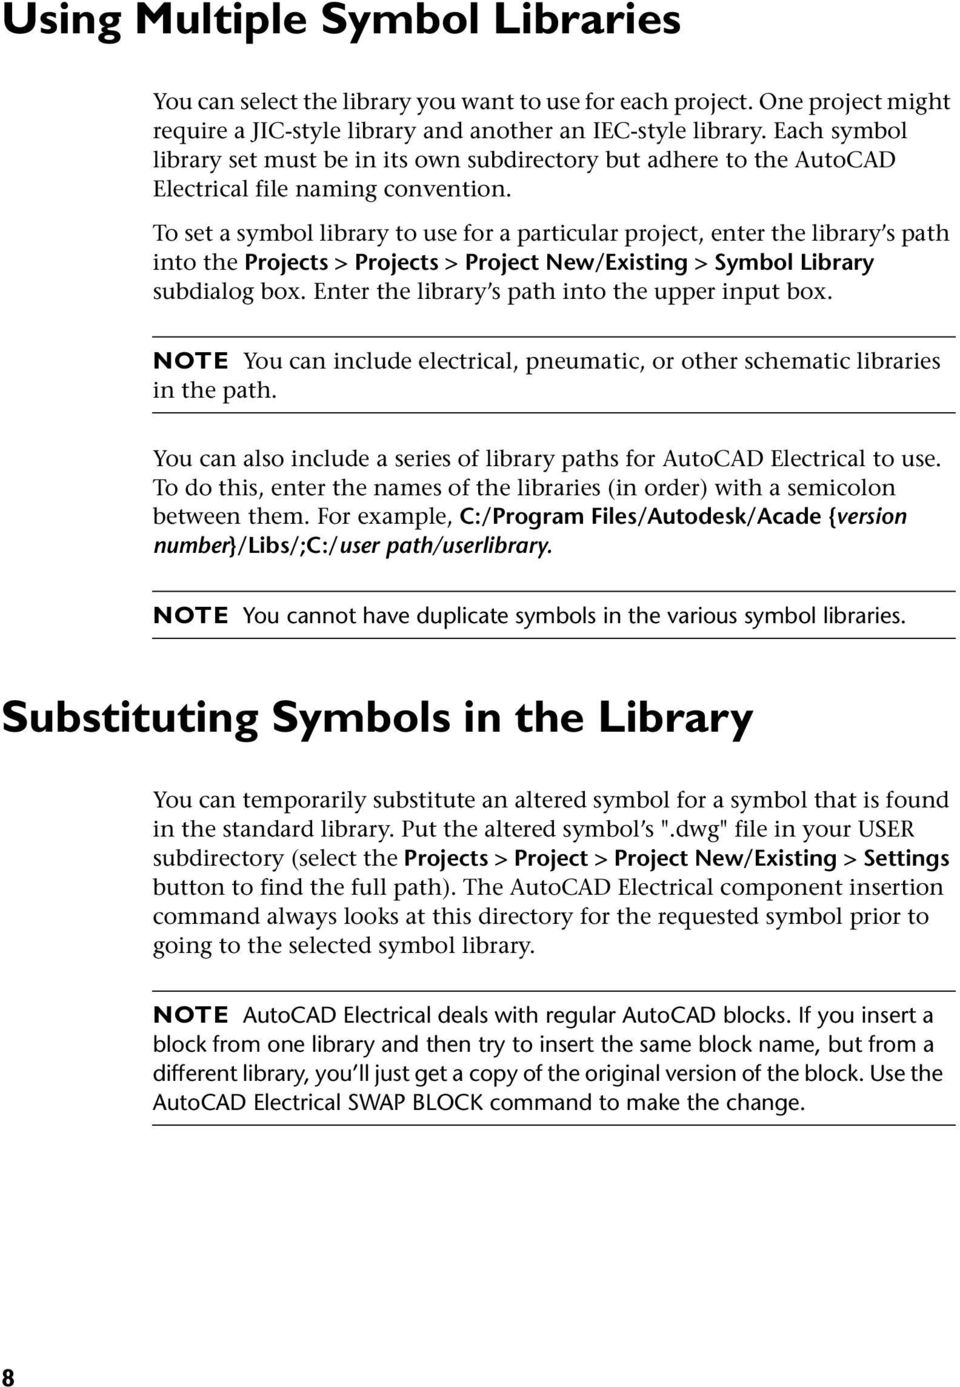 AutoCAD Electrical Symbol Libraries - PDF